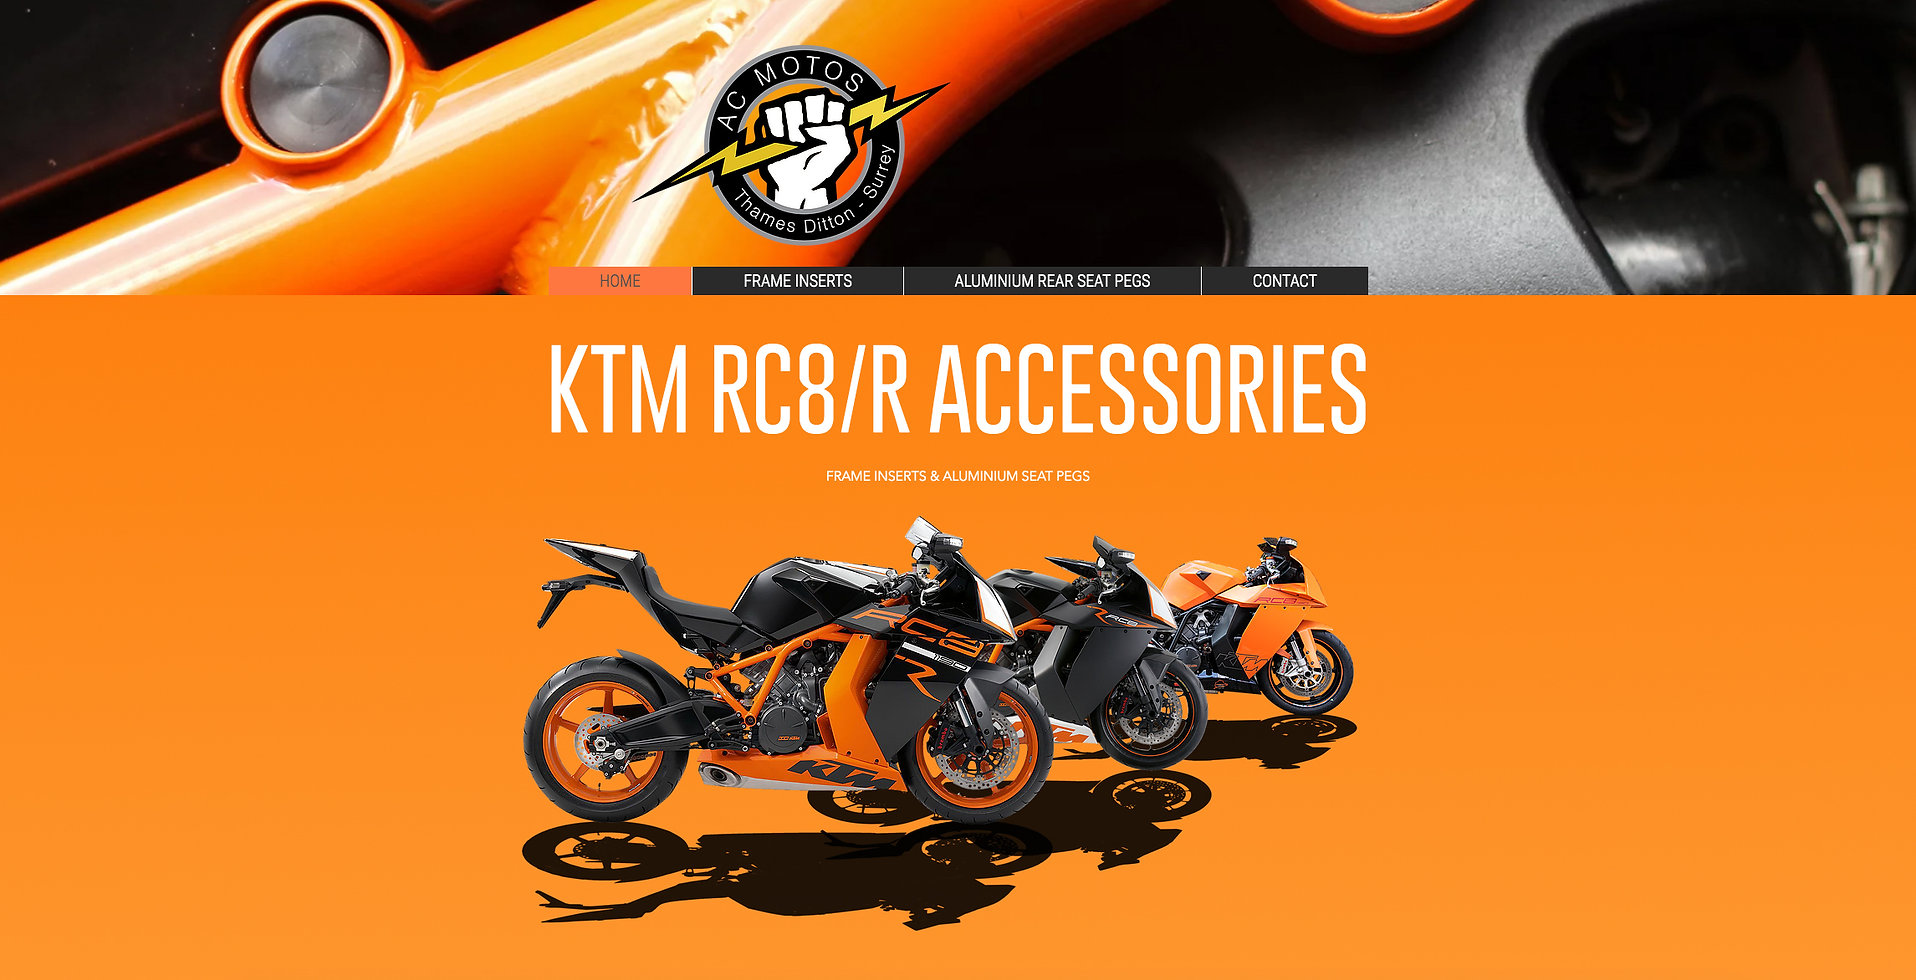 RC8 Accessories frnt page.jpg